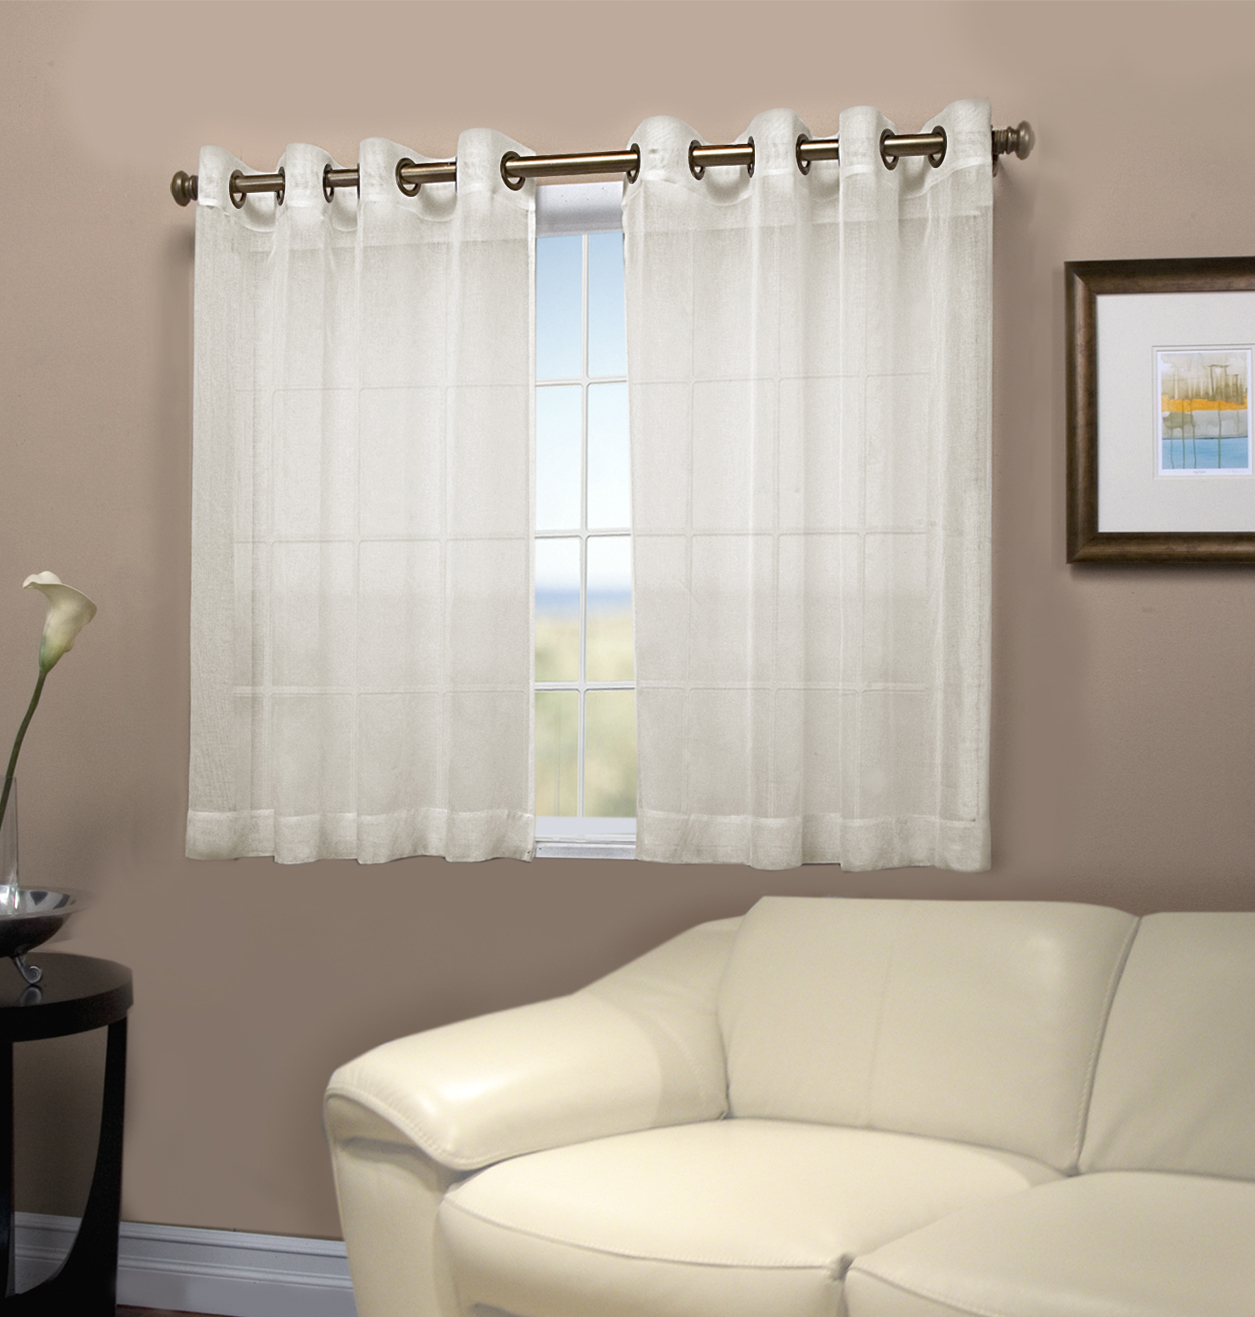 45 inch long curtains thecurtainshop com